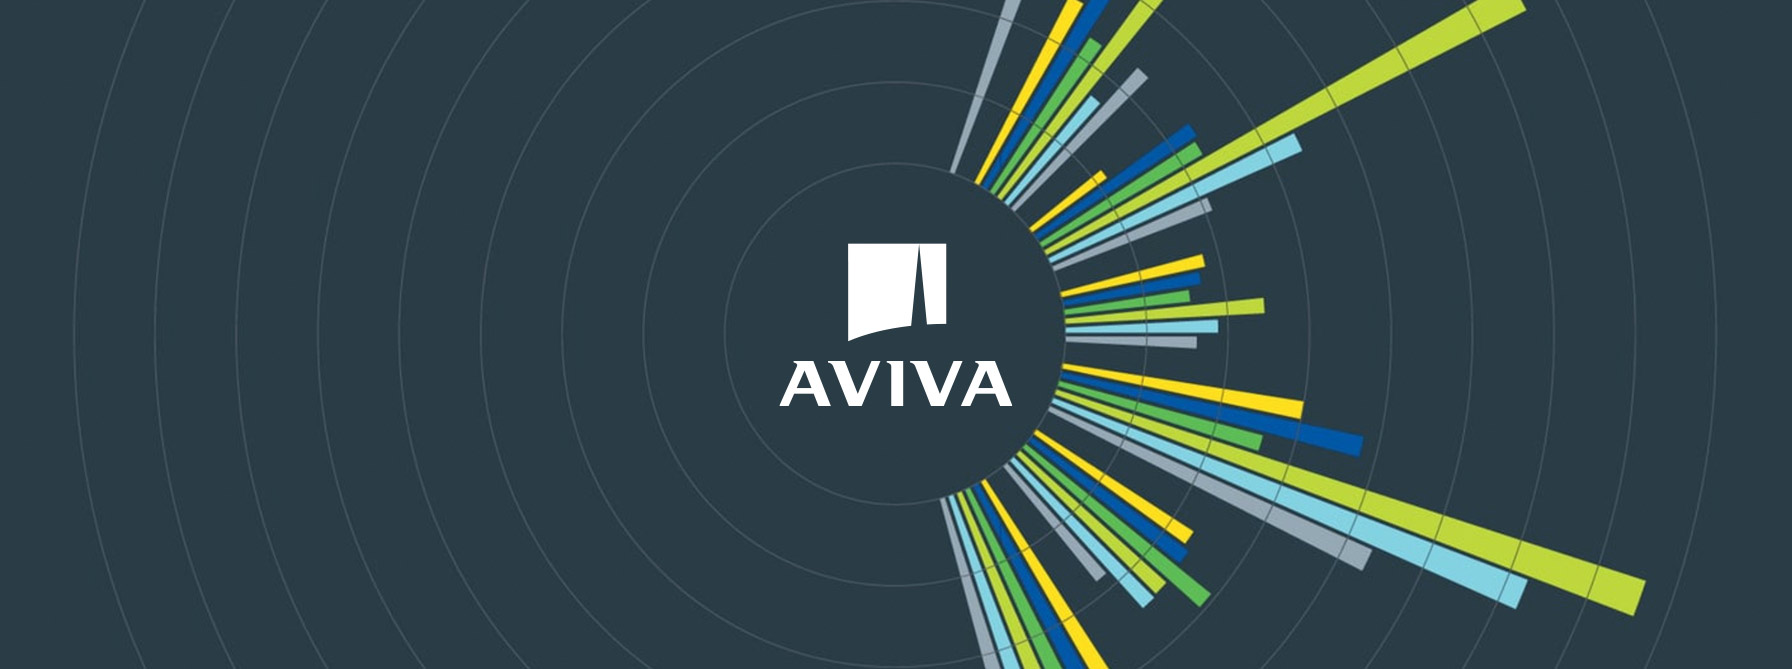 Aviva Investors elevates its content with podcasting and award winning publishing header